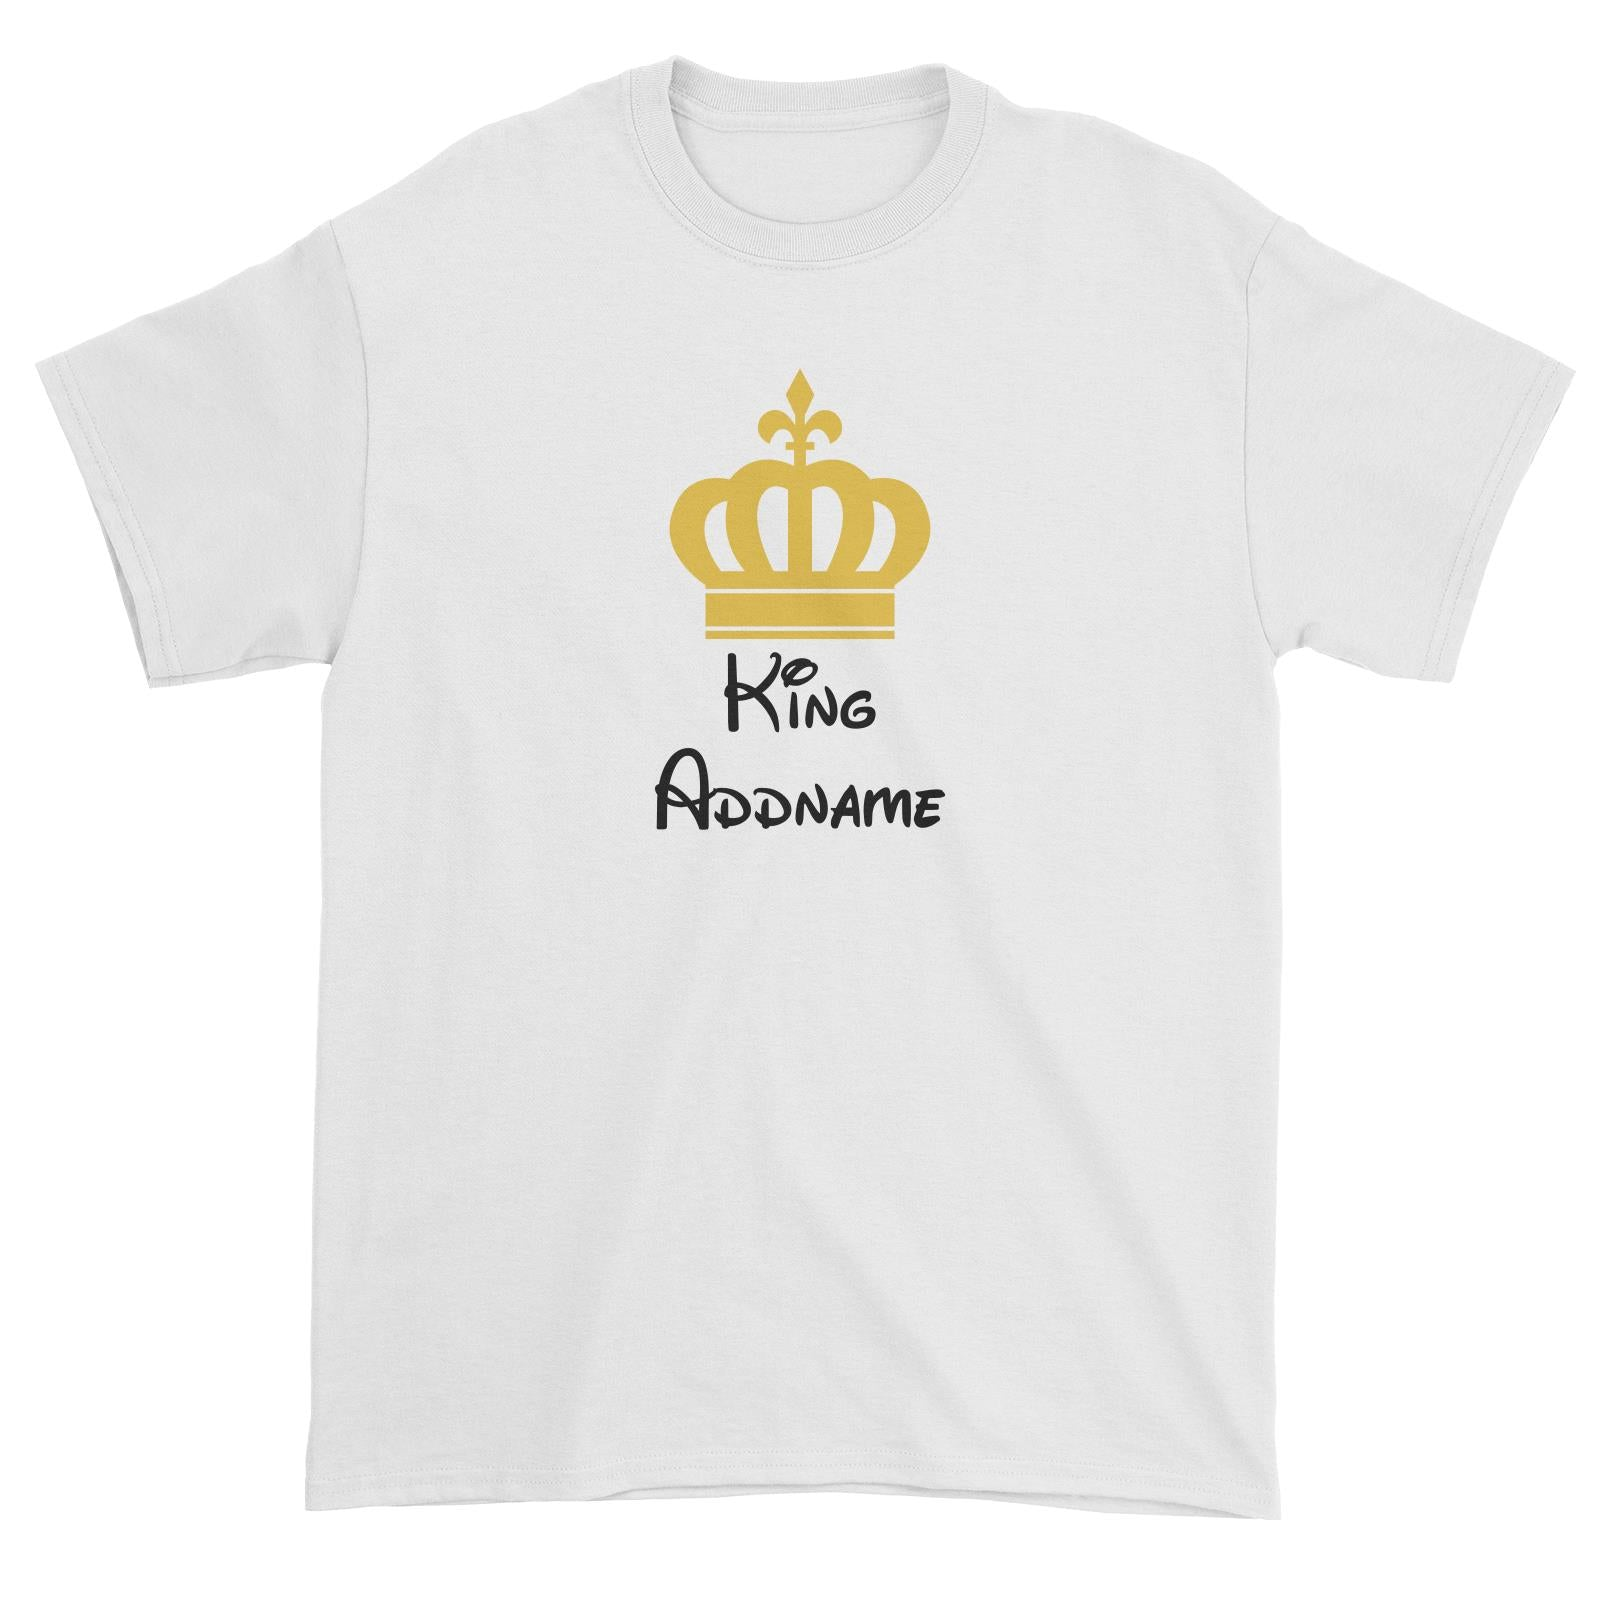 Royal King with Crown Addname Unisex T-Shirt